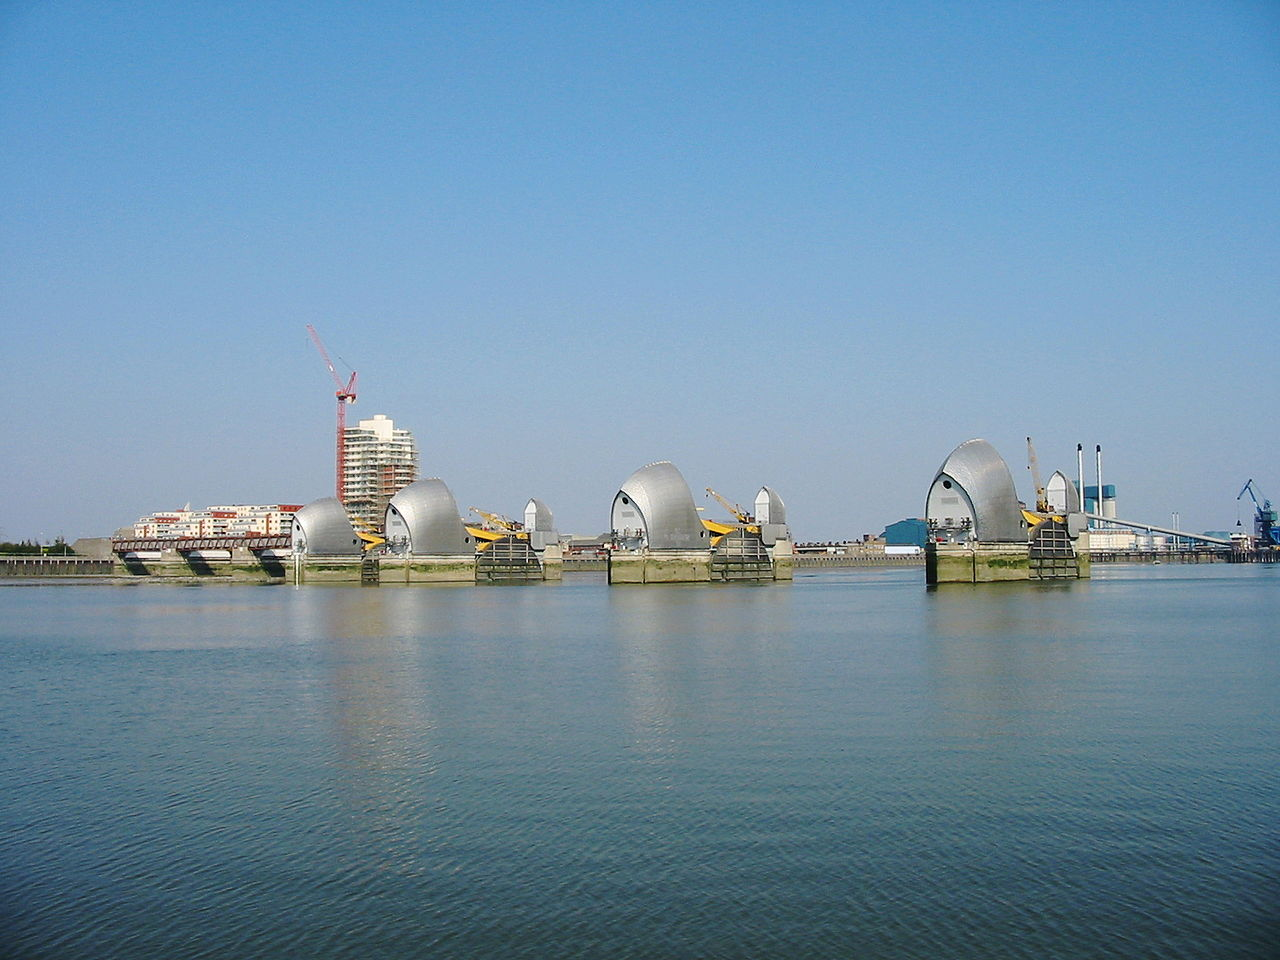 Far view of the River Thames Flood Barrier